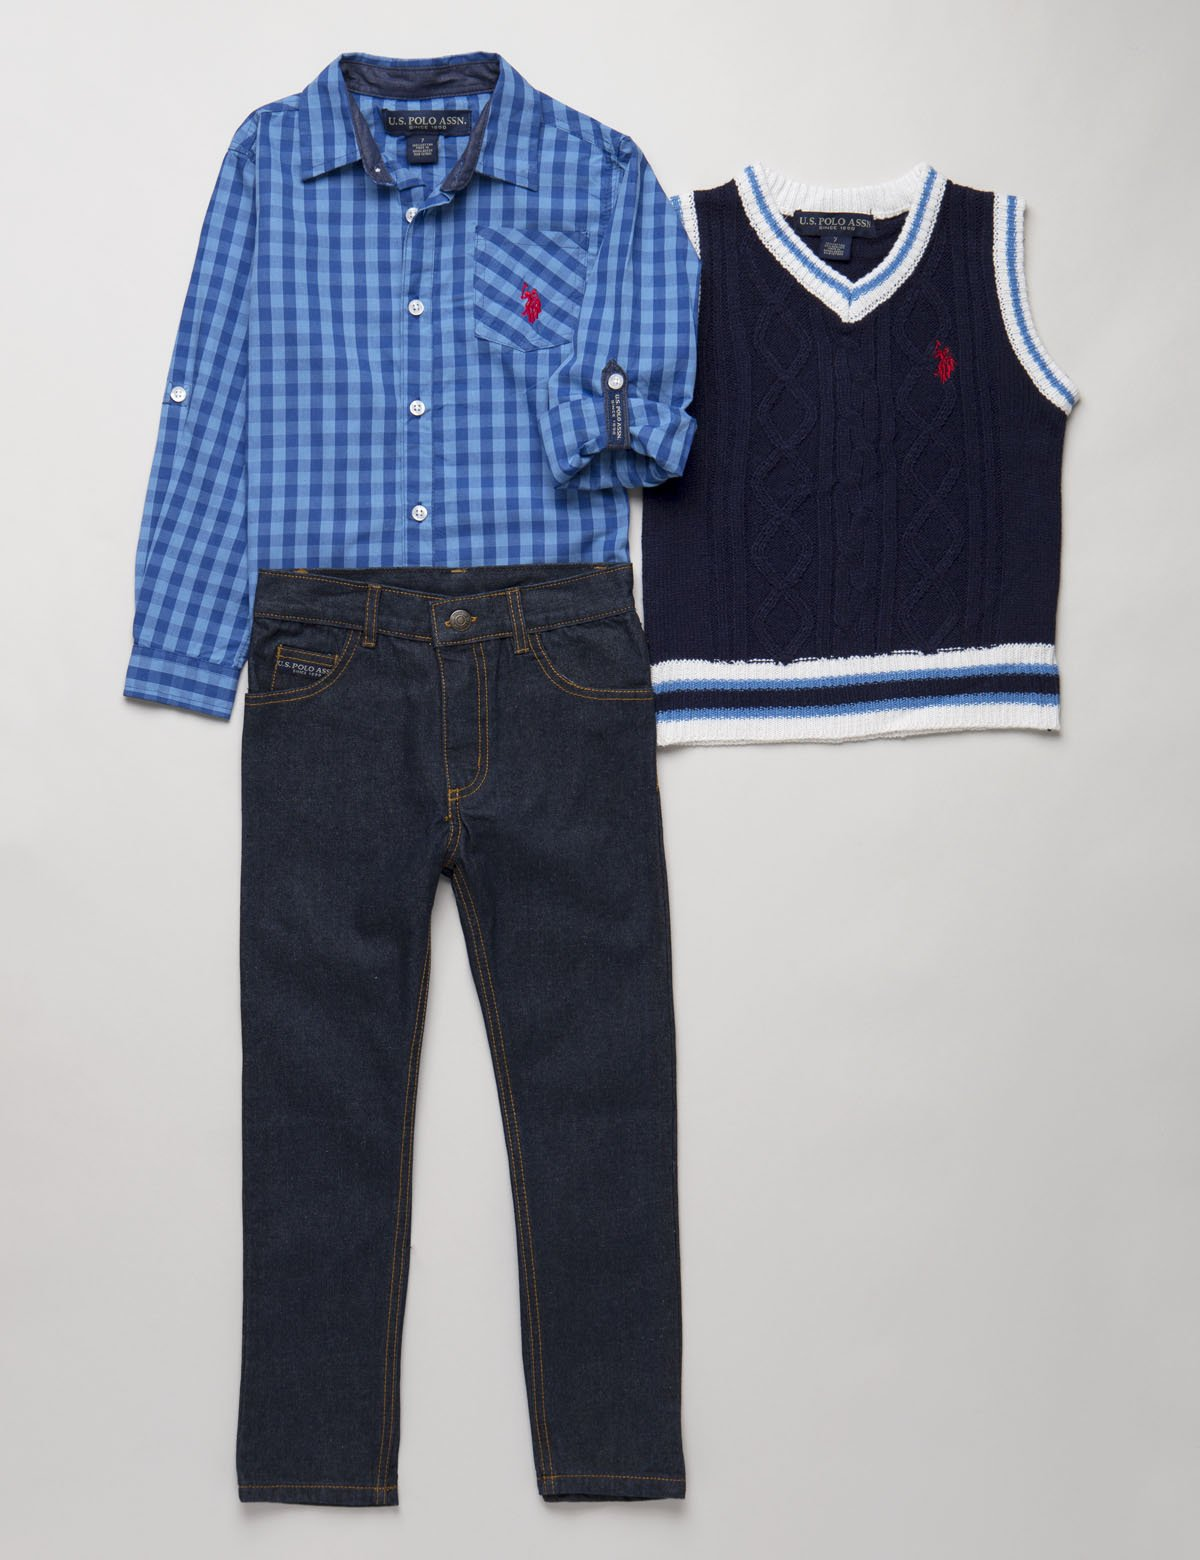 BOYS 3 PIECE SET: VEST, SHIRT & JEANS